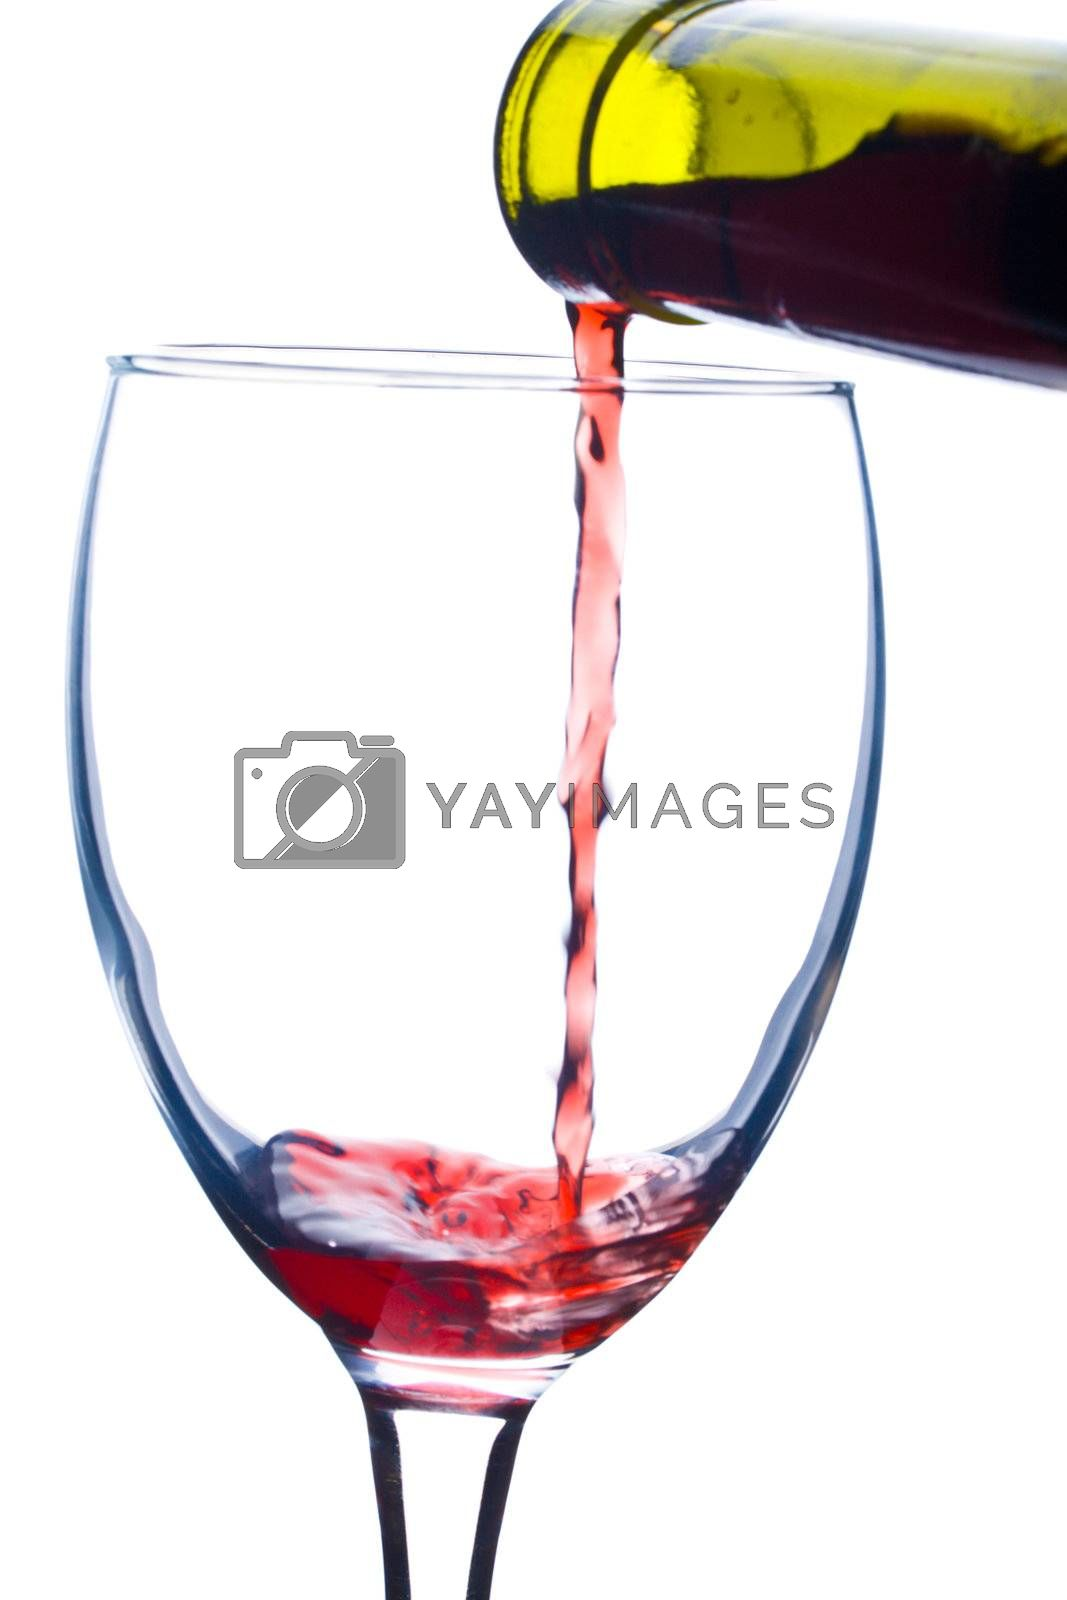 Royalty free image of close-up pouring a wine in glass by Alekcey